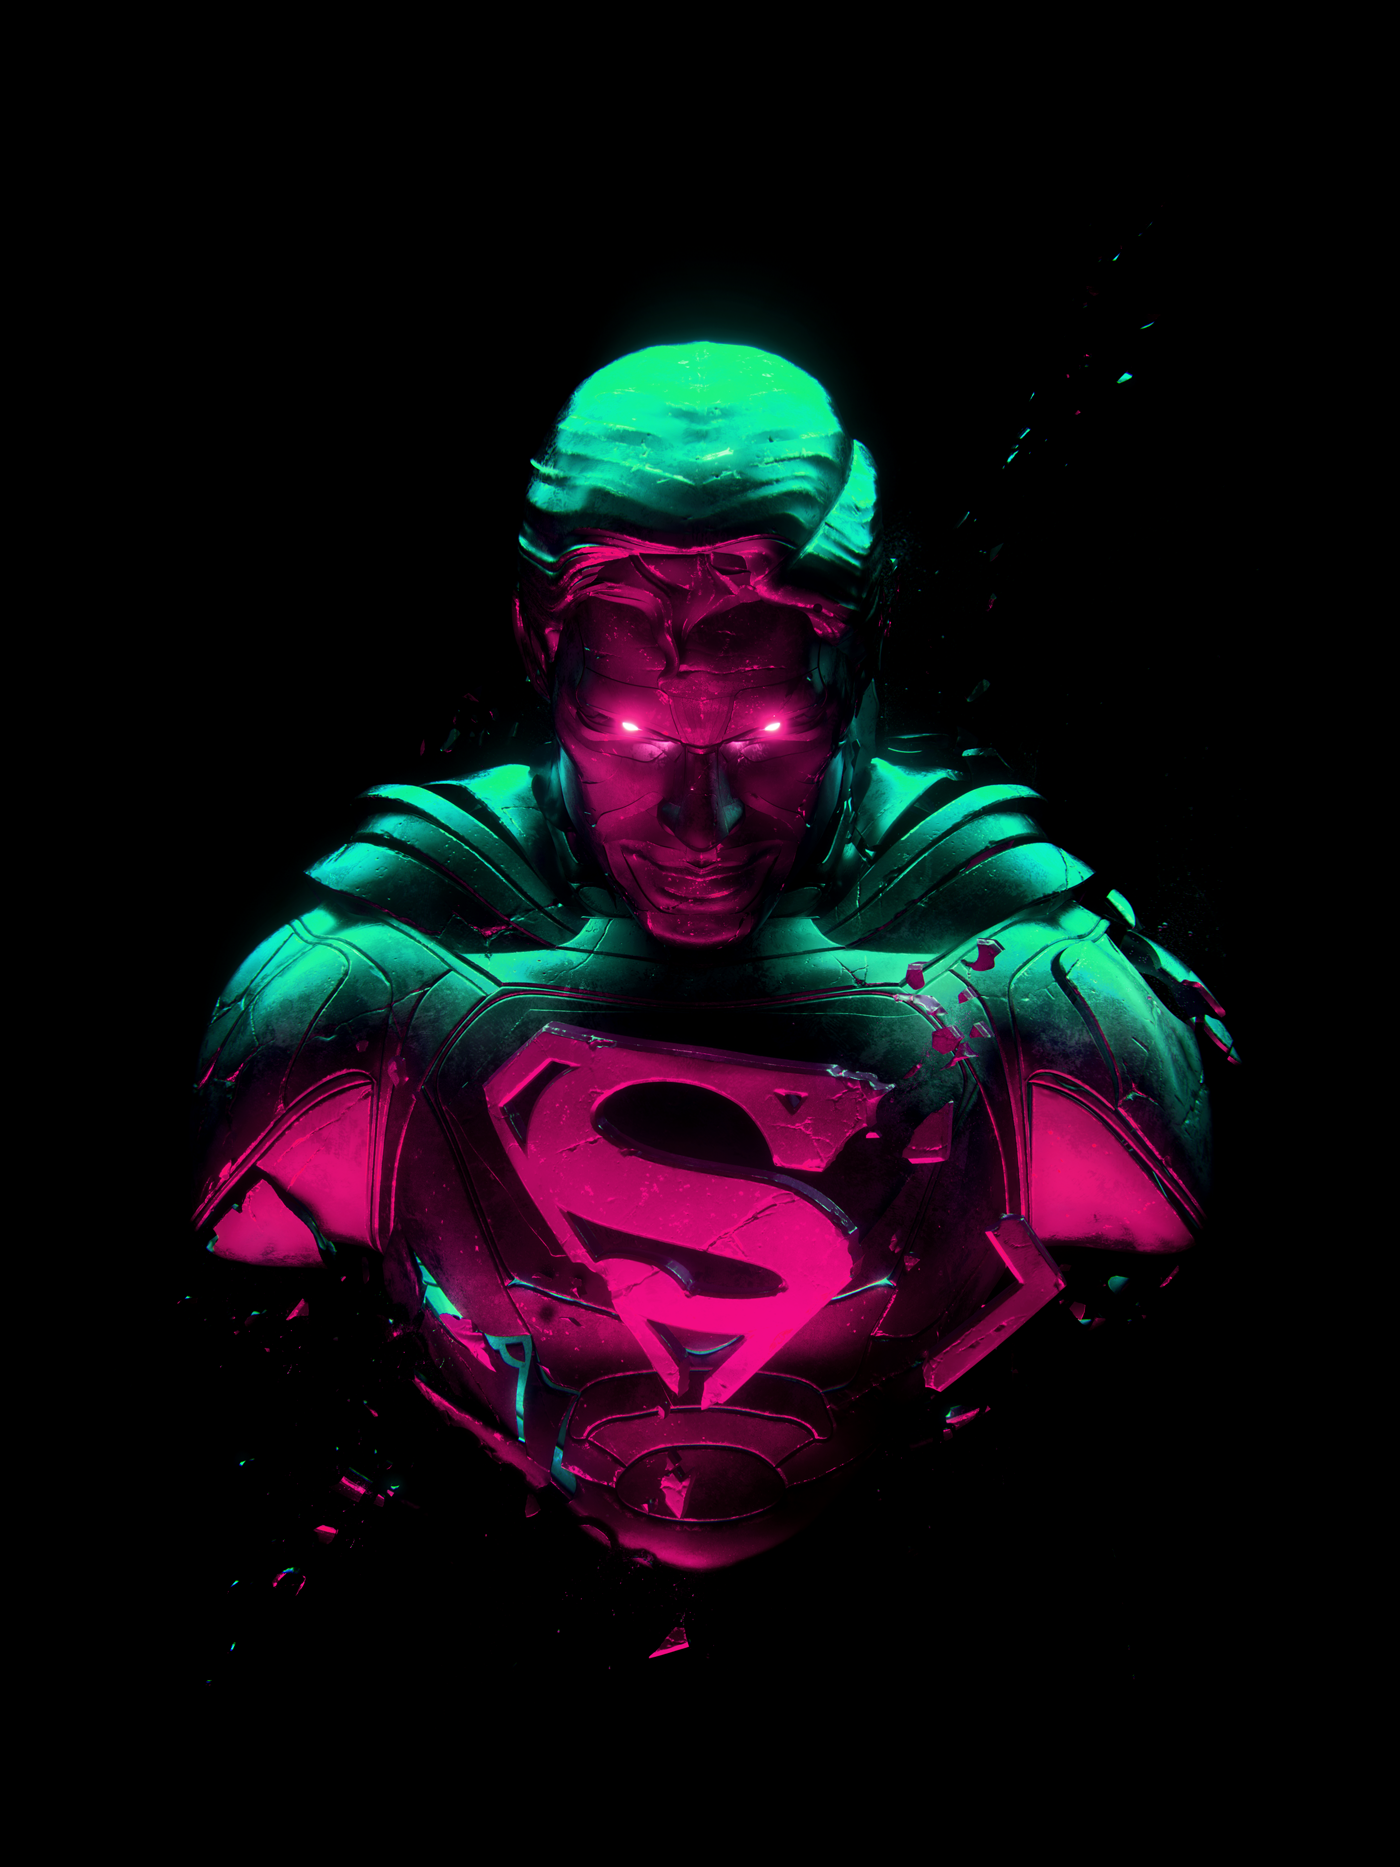 Digital art of Man of Steel by Adam Spizak